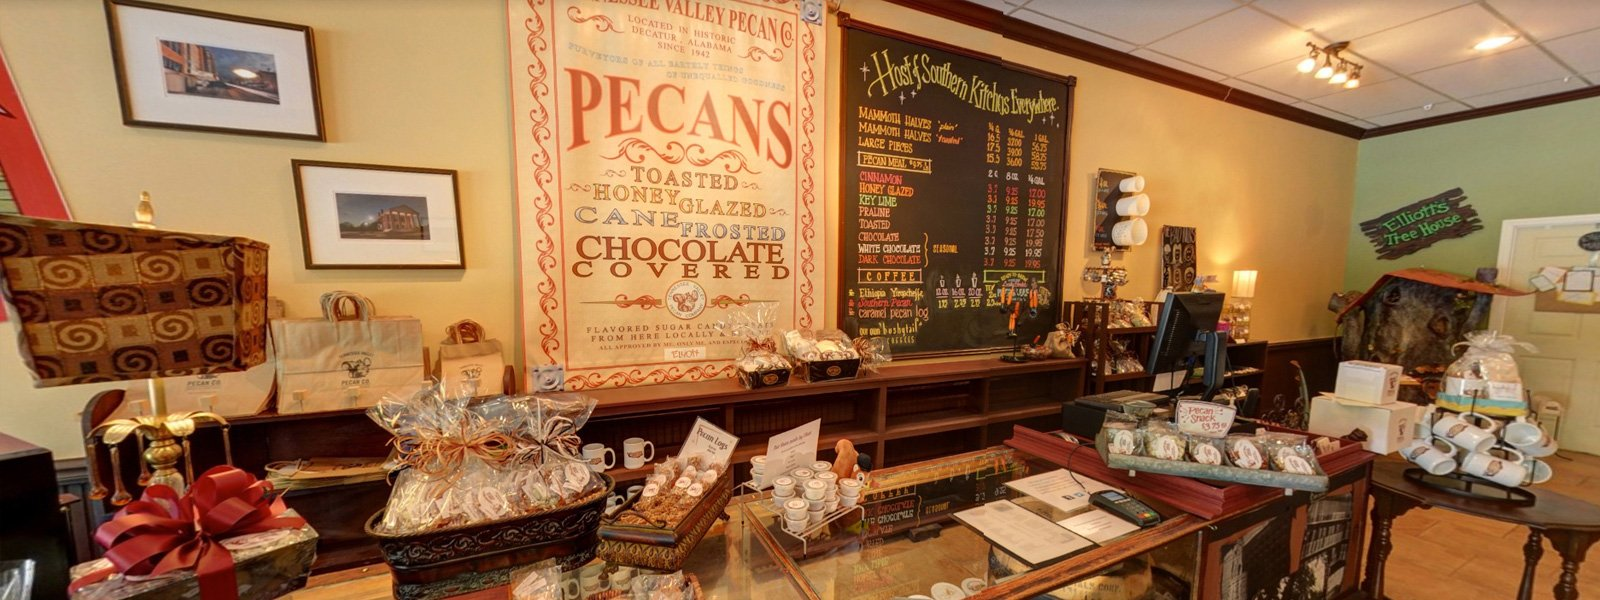 tn-valley-pecan-shop_1600x